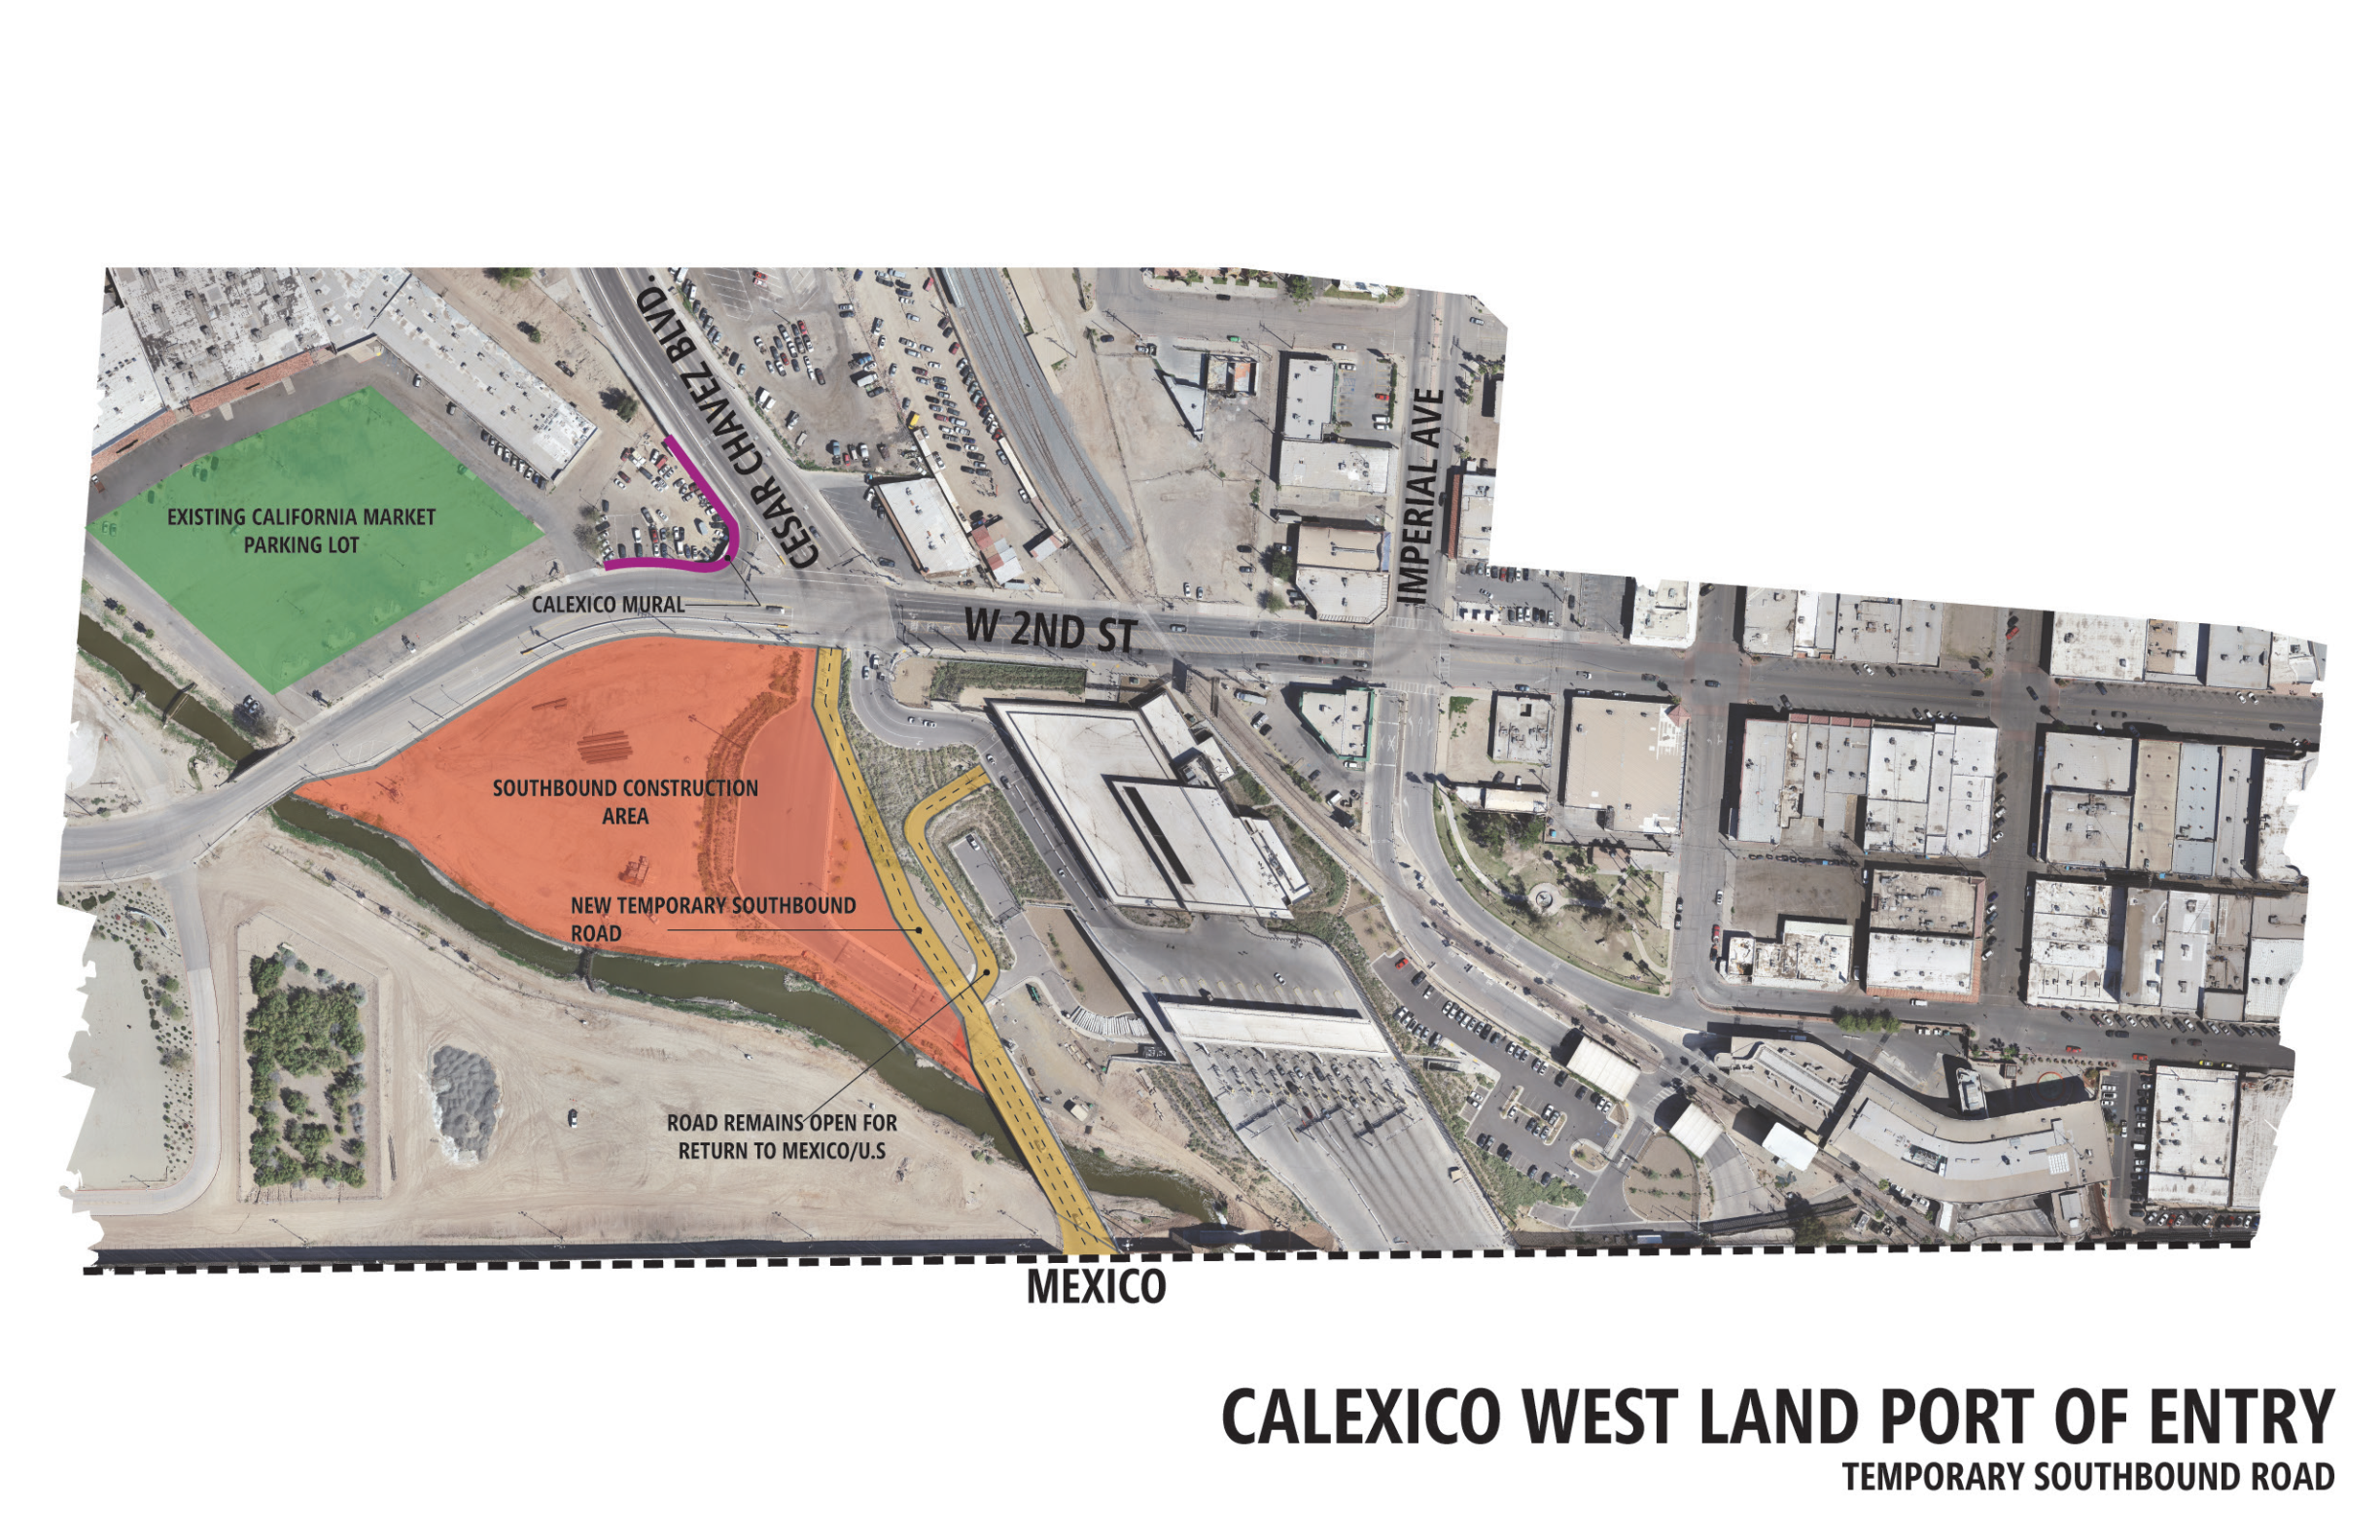 Map showing temporary roadway for Calexico West project